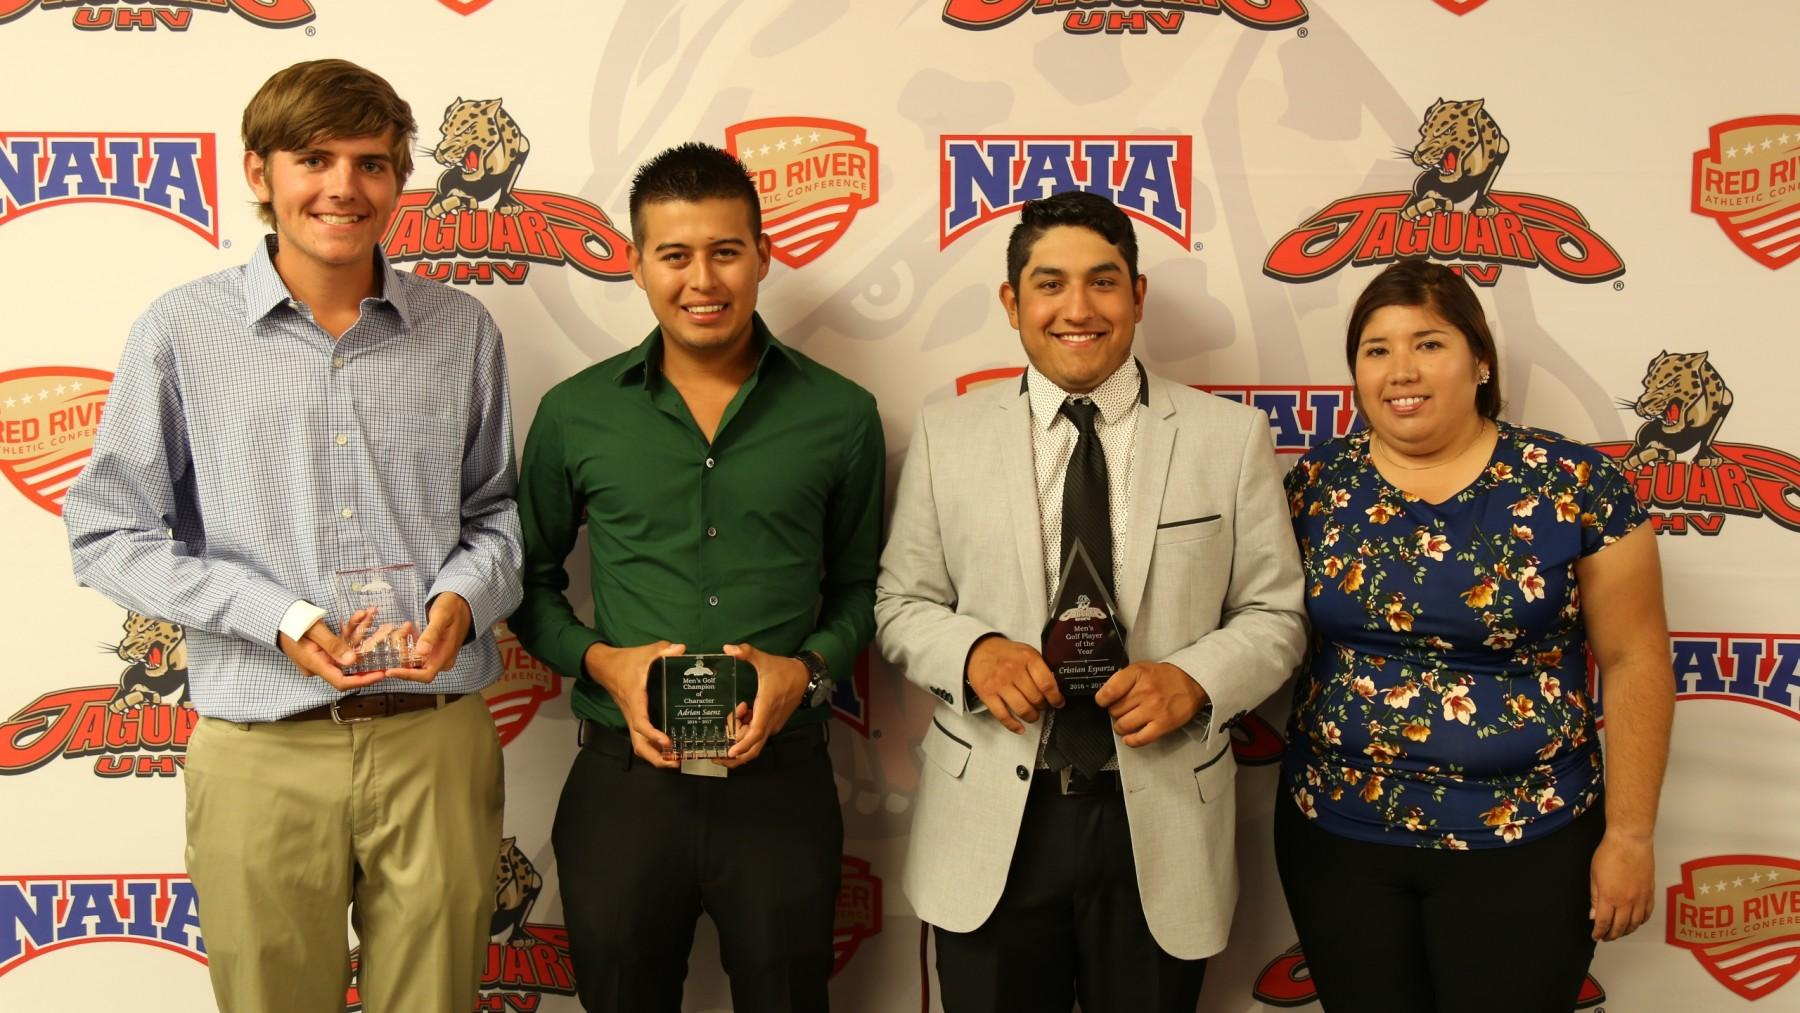 Esparza named men's golf player of the year